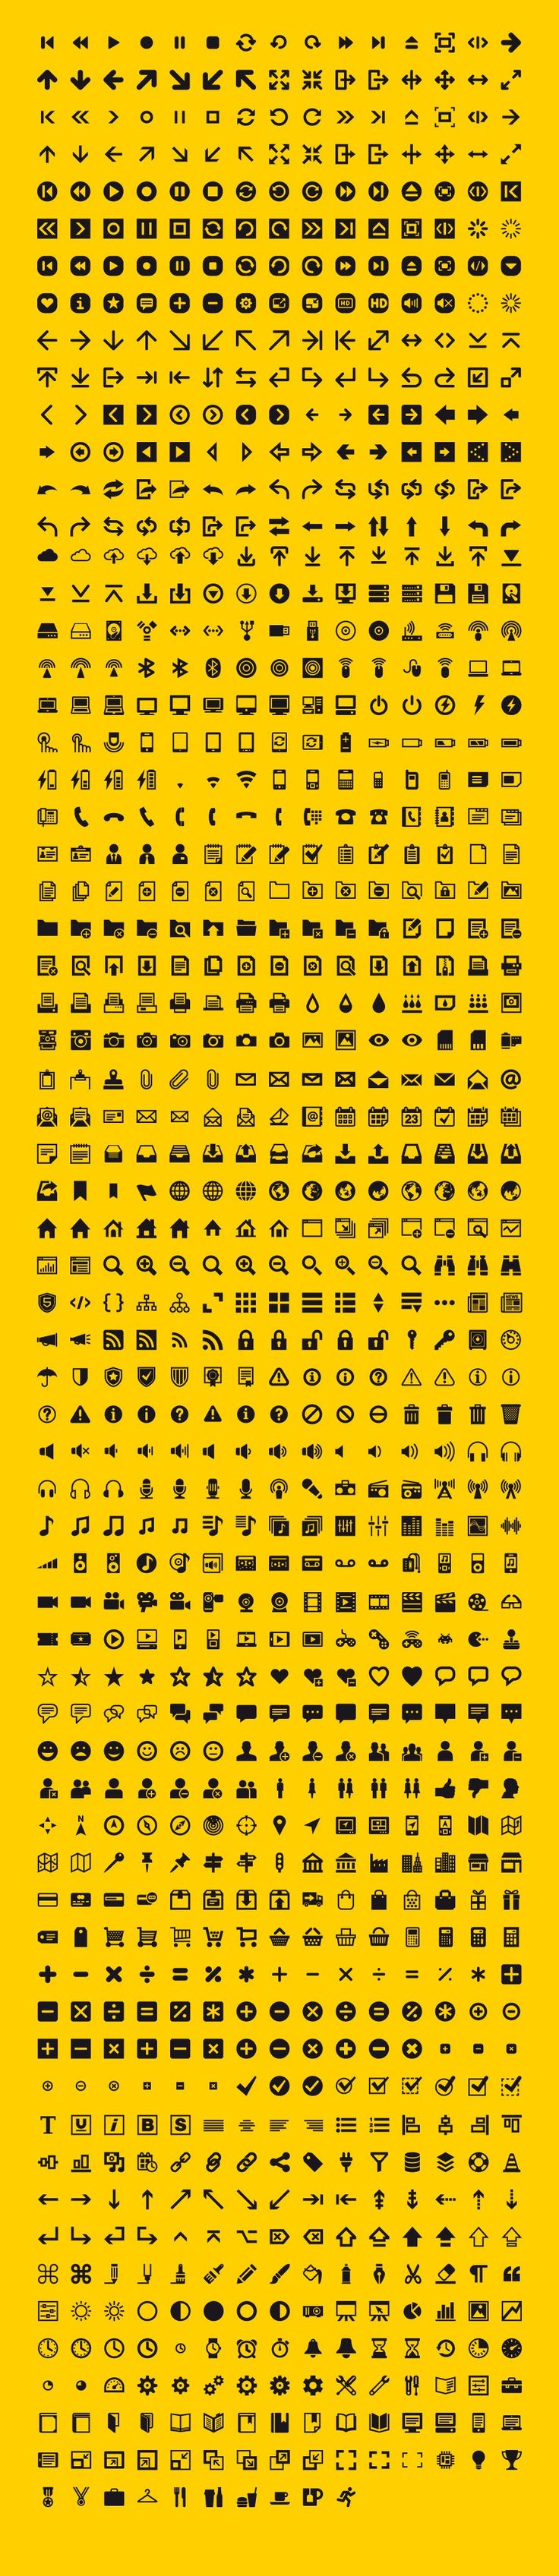 1000 vector icons is an icon set developed for everyday use. This professional and accurate series of icons is both flexible and easy to use. The icons work great everywhere; from wireframes to websites and mobile apps to print. All the icons were developed in Adobe Illustrator using a grid system. This ensures pixel perfection …